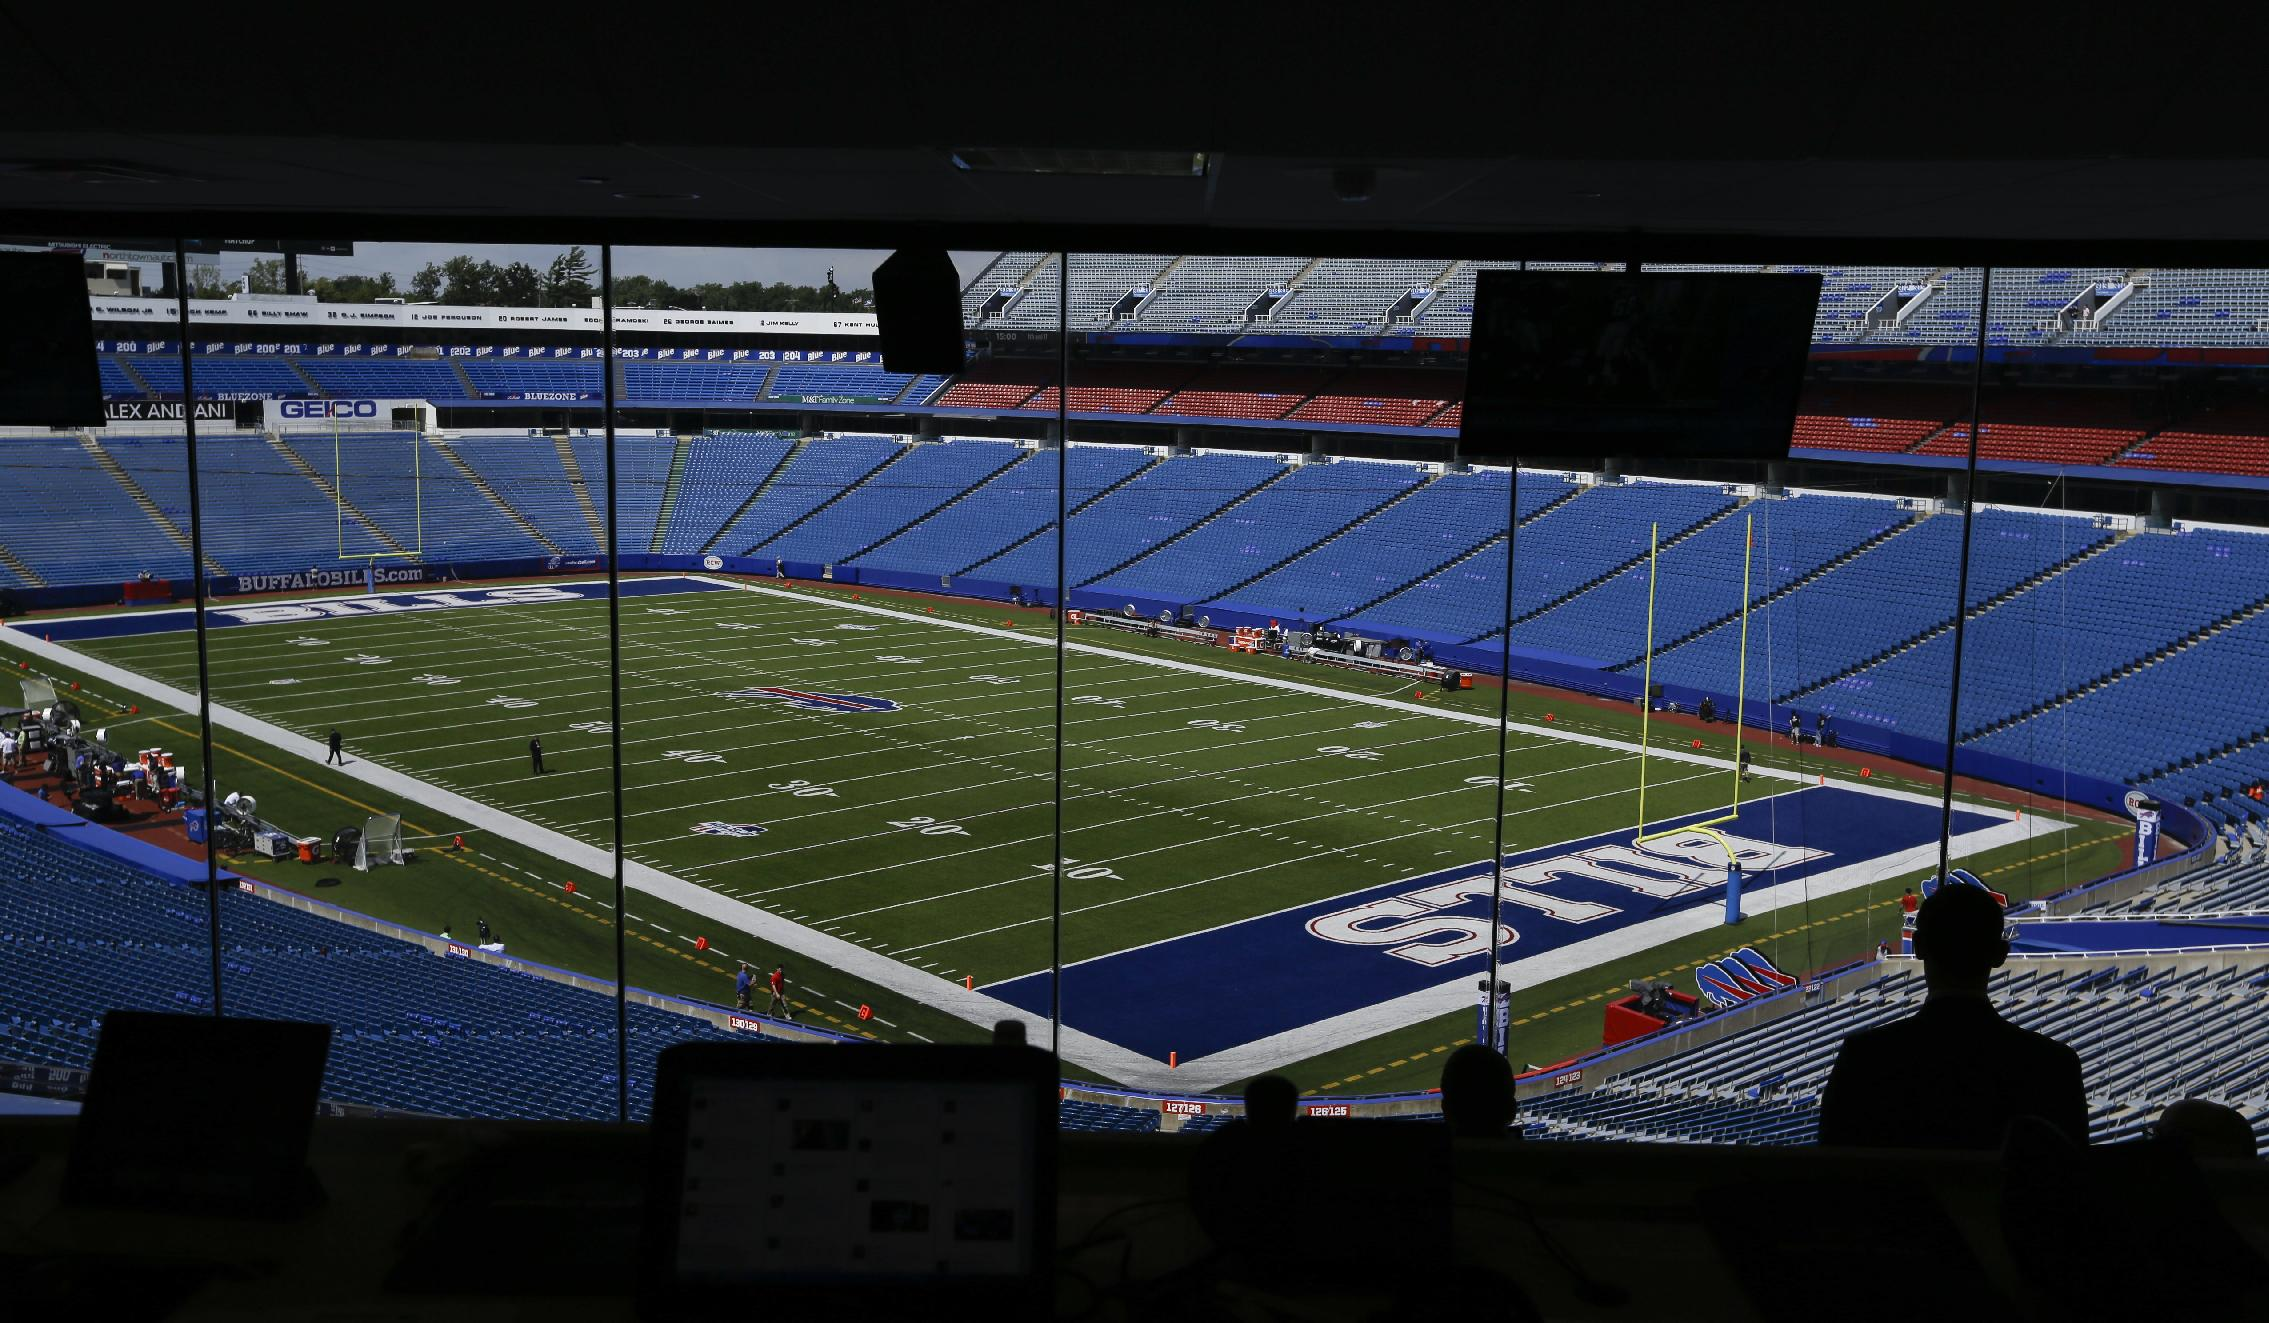 People observe the field at Ralph Wilson Stadium before a preseason NFL football game between the Buffalo Bills and the Tampa Bay Buccaneers Saturday, Aug. 23, 2014, in Orchard Park, N.Y